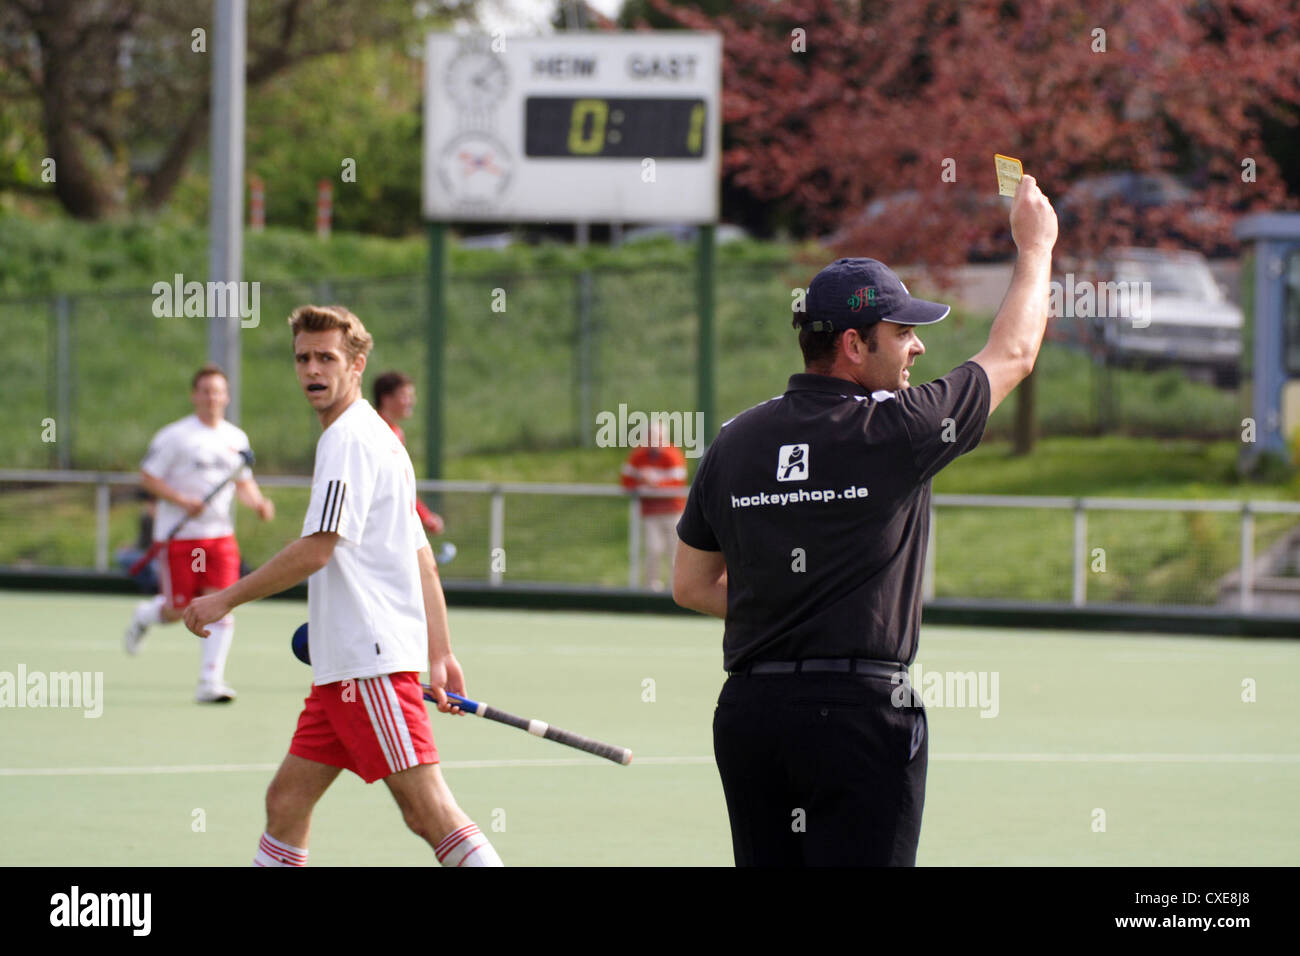 Ruesselsheim, referee gives a disgruntled hockey player the yellow card - Stock Image